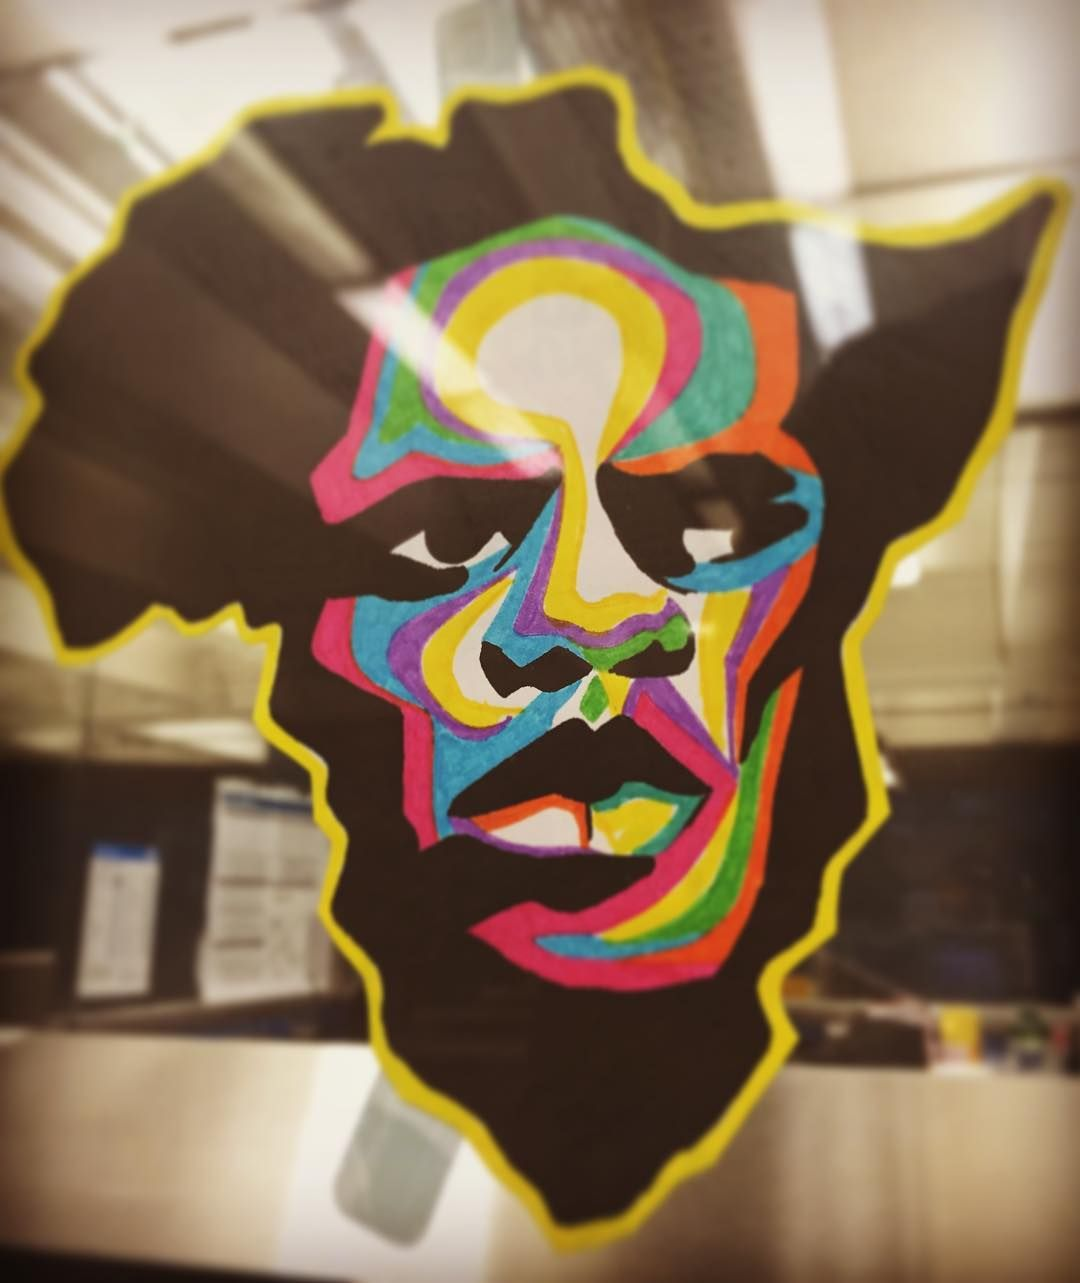 While out and about #bart #africa #streetart #oakland by dodatamen